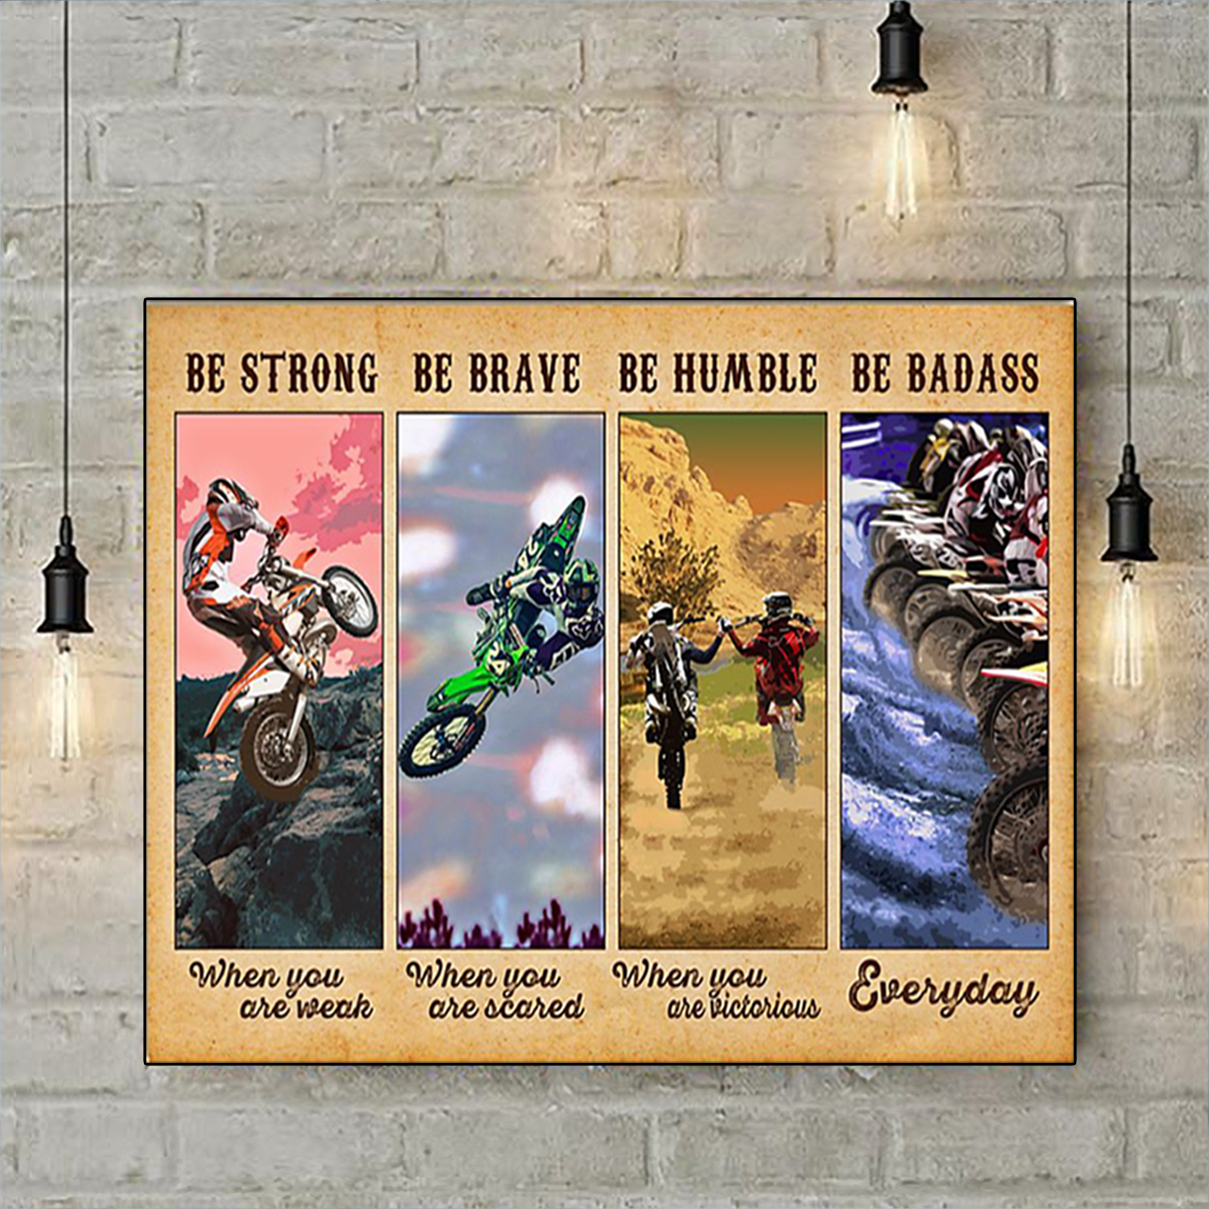 Motocross be strong be brave be humble be badass poster A1